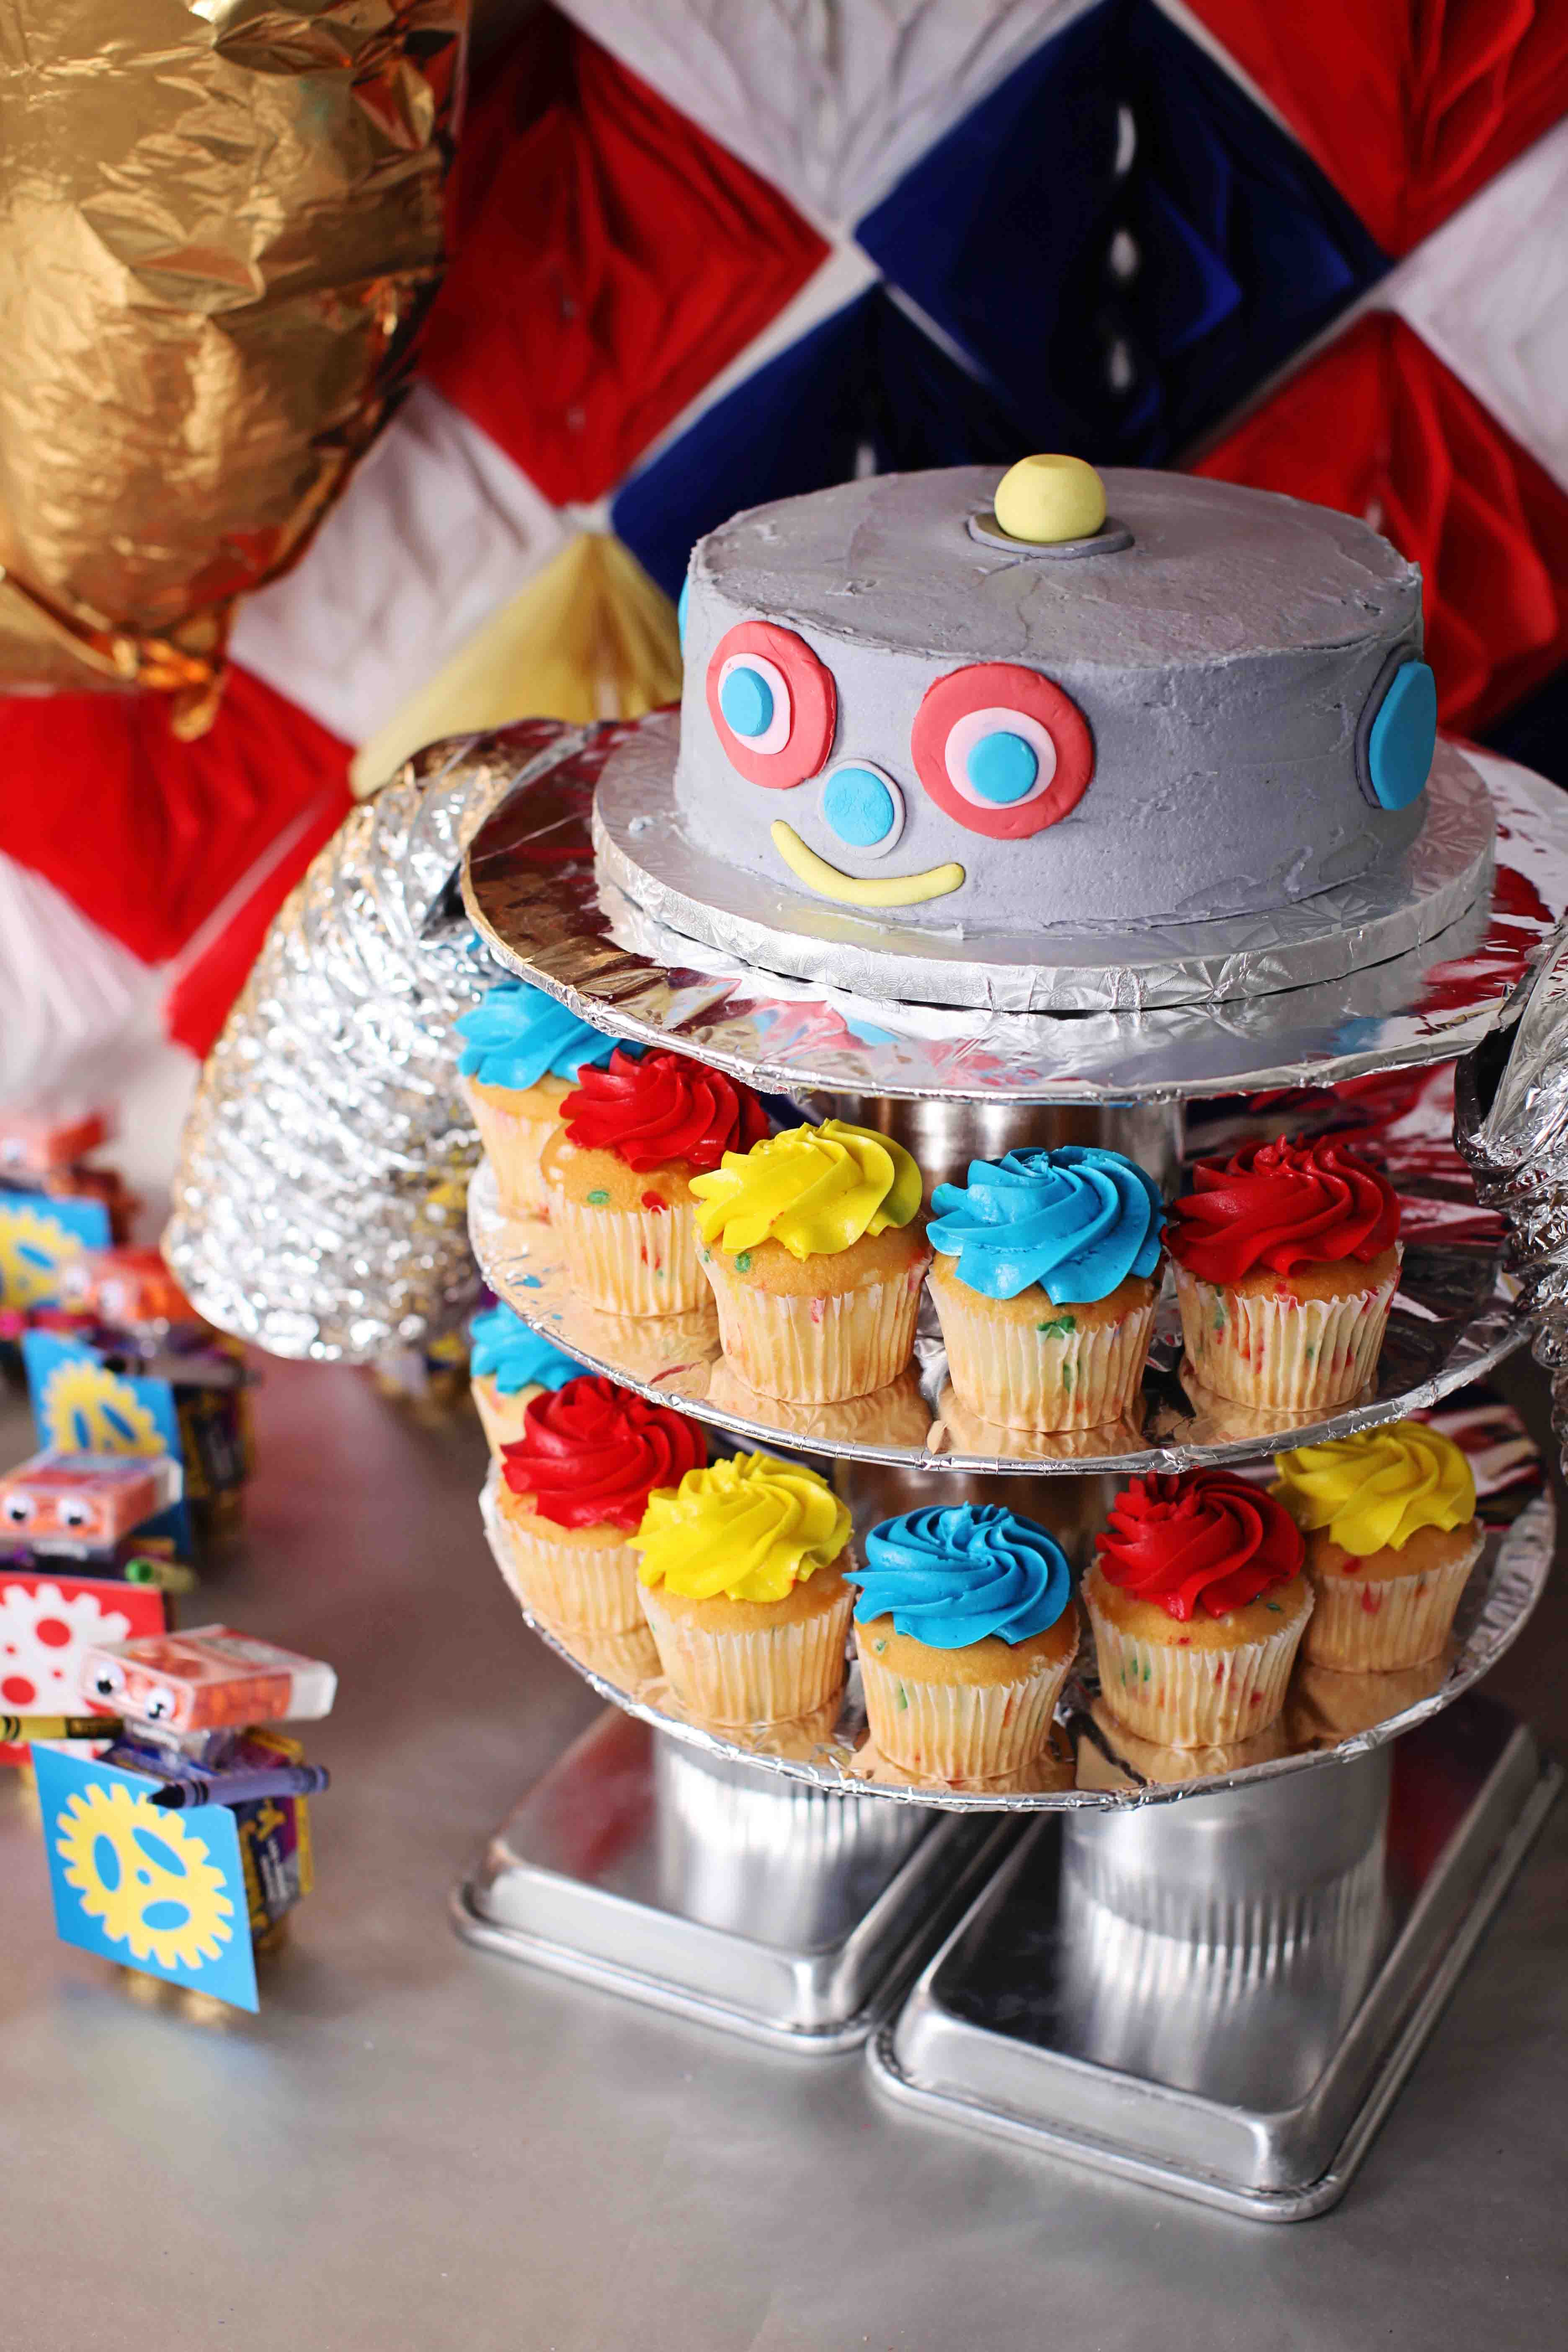 Best ideas about Birthday Party Theme . Save or Pin Boy s Birthday Party Ideas Robot Birthday Now.